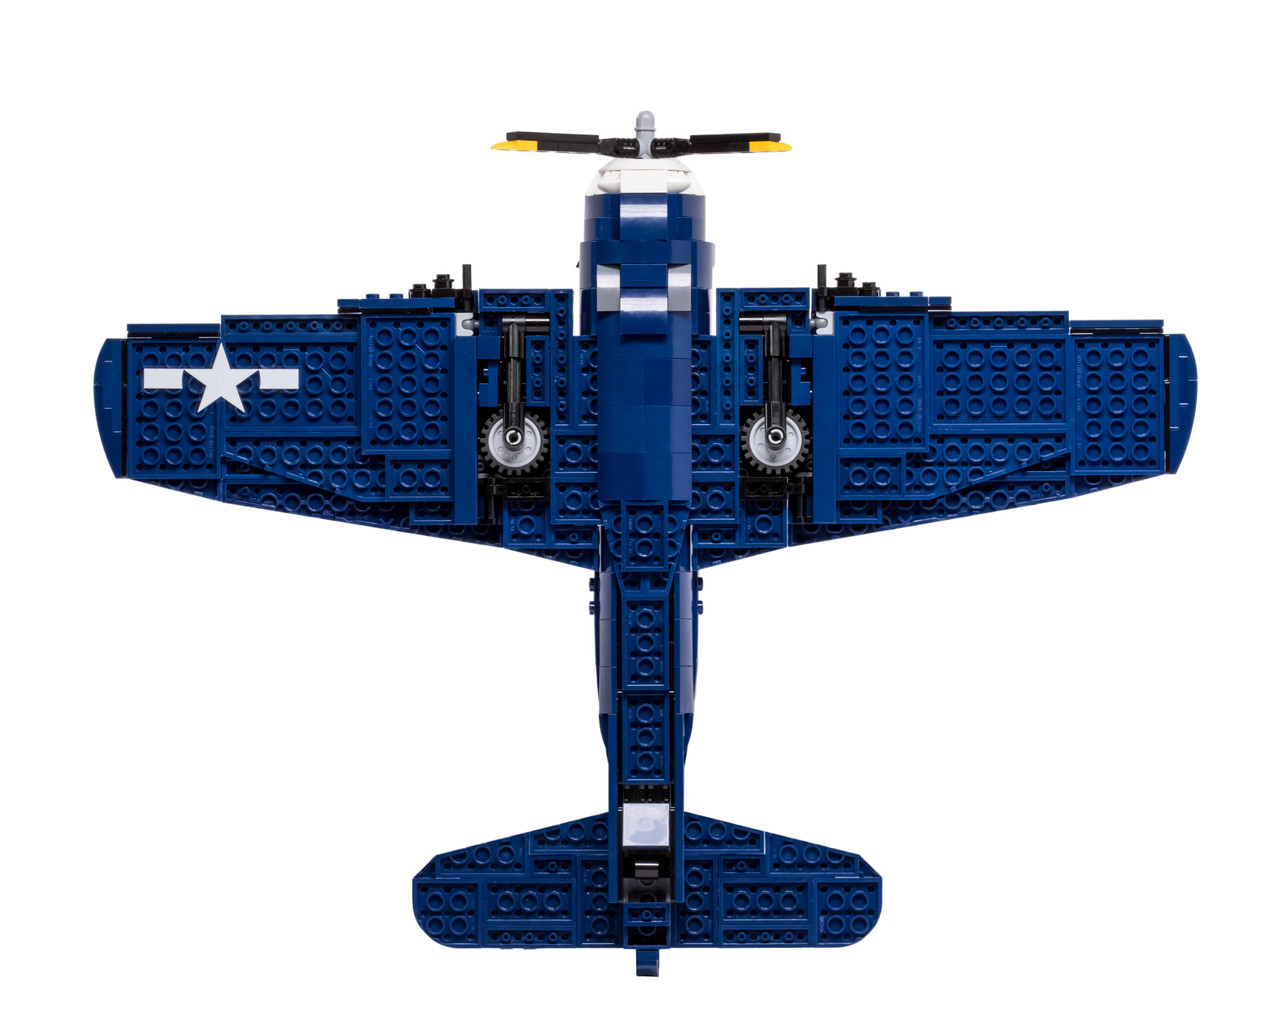 20+ Brickmania Planes Pictures and Ideas on Meta Networks